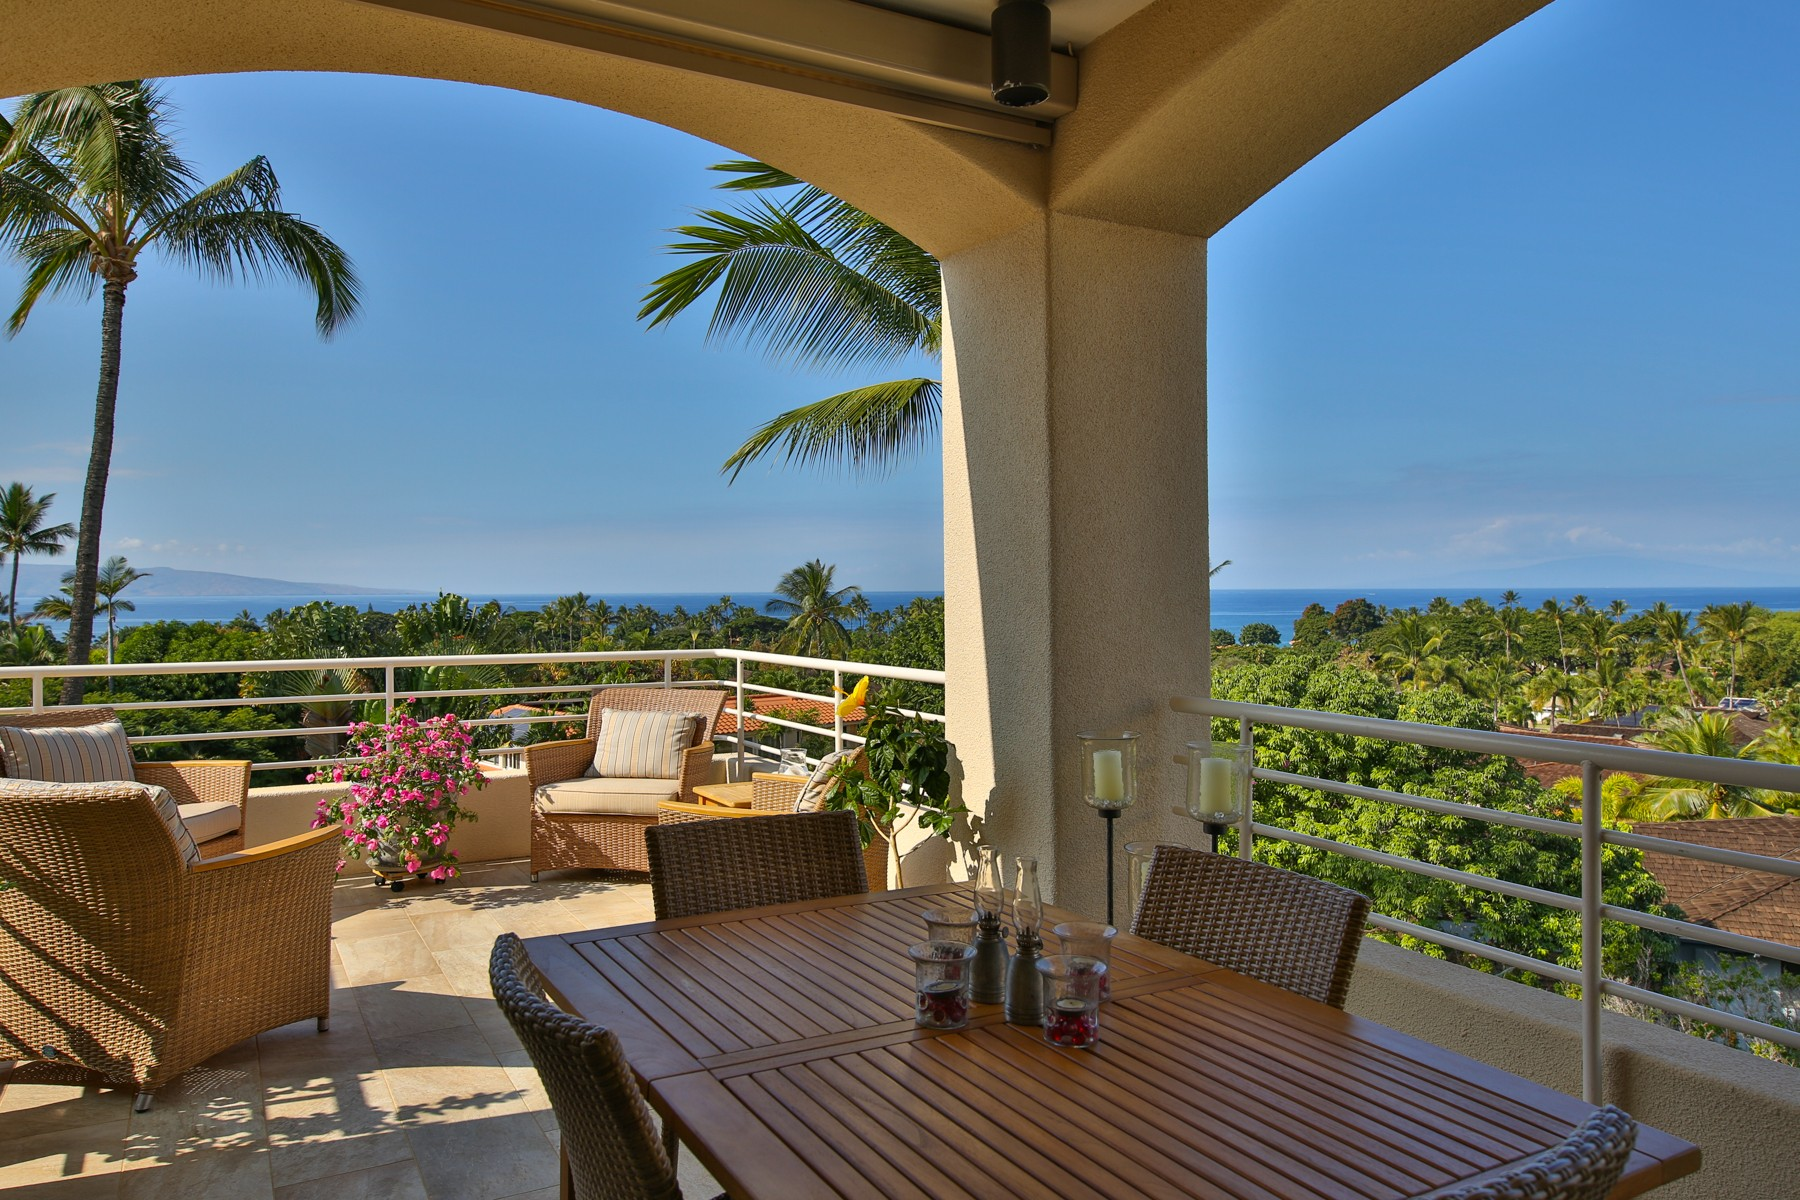 コンドミニアム のために 売買 アット Intriguing Ocean & Sunset Views All-Year-round 3150 Wailea Alanui Drive, Wailea Palms 3504 Wailea, ハワイ 96753 アメリカ合衆国